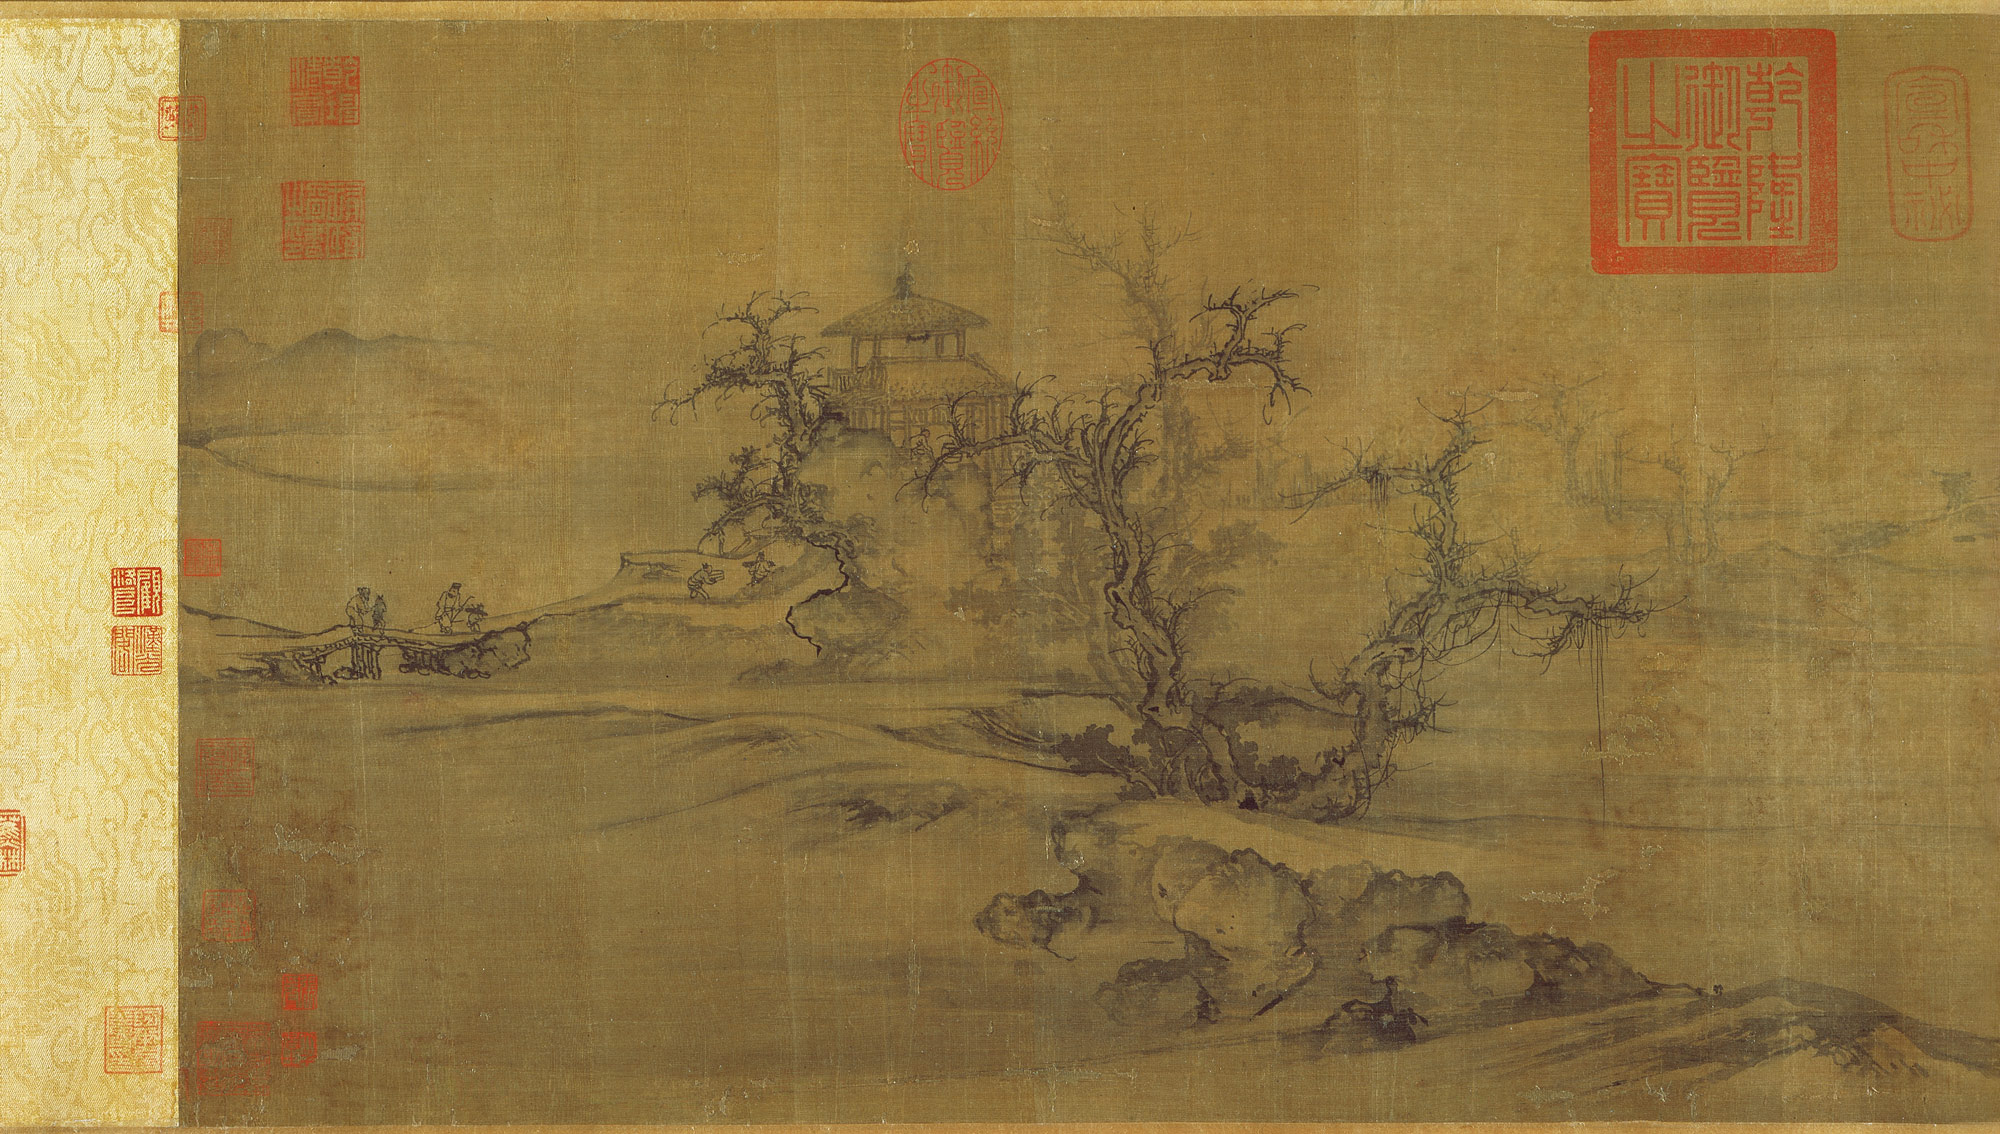 northern song dynasty 960 1127 essay heilbrunn timeline of old trees level distance